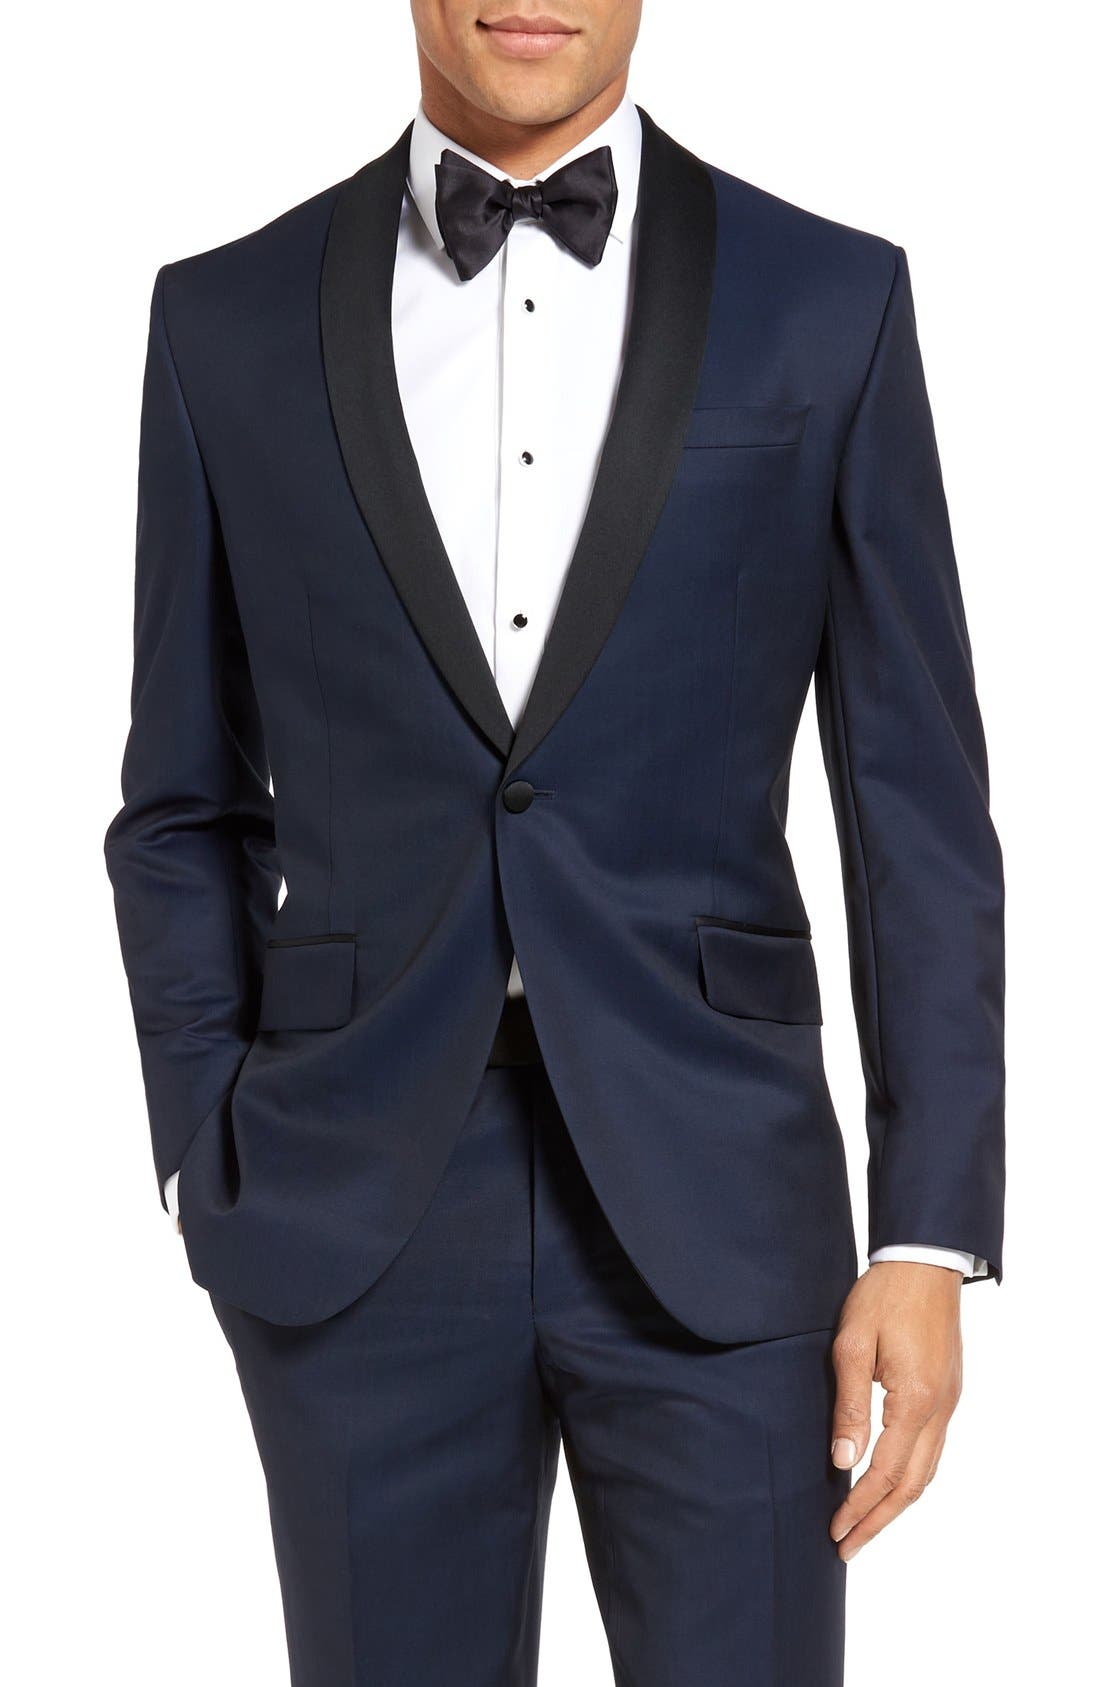 'Josh' Trim Fit Navy Shawl Lapel Tuxedo,                             Alternate thumbnail 5, color,                             Navy Blue